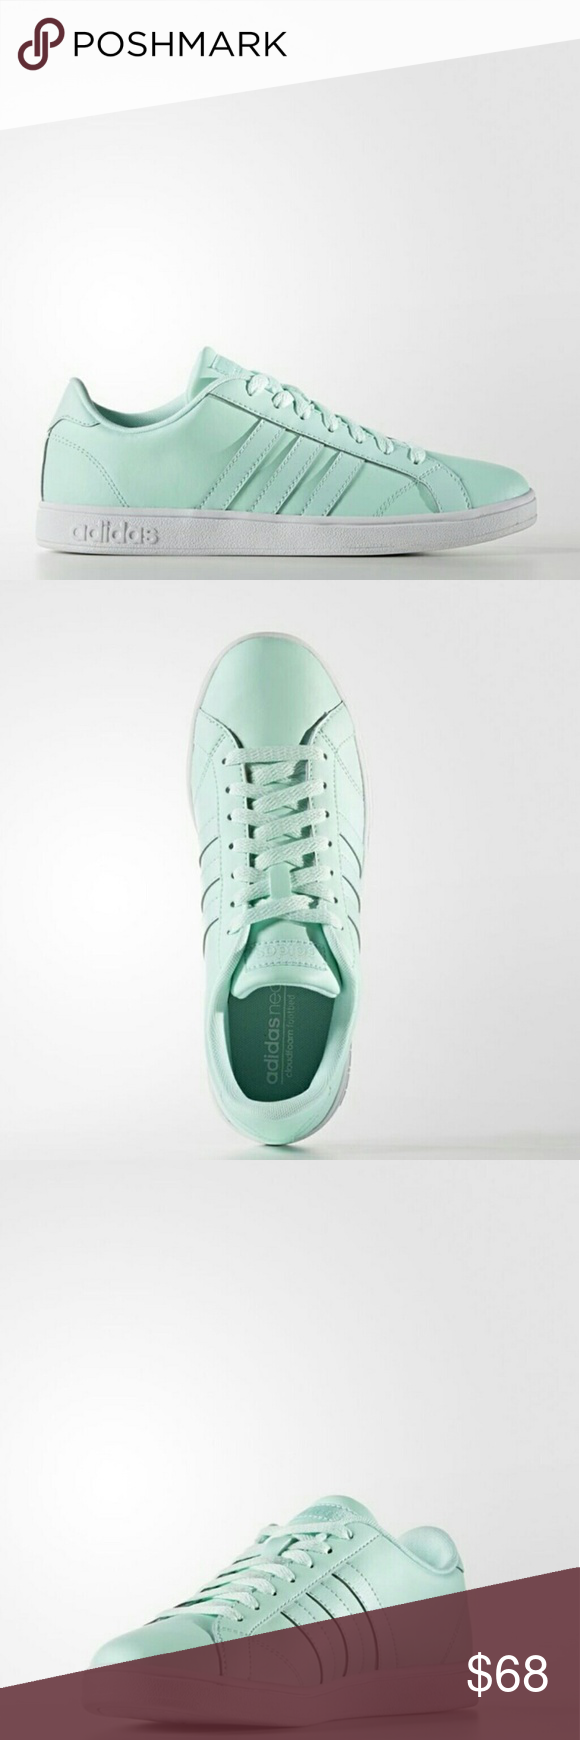 Adidas Women's Seafoam Sneaks Clean, court-inspired fashion. These girls' shoes show off a performance-ready look in leather. Classic color combinations give them timeless style.  Leather Imported Rubber sole Leather upper Synthetic leather 3-stripes Comf